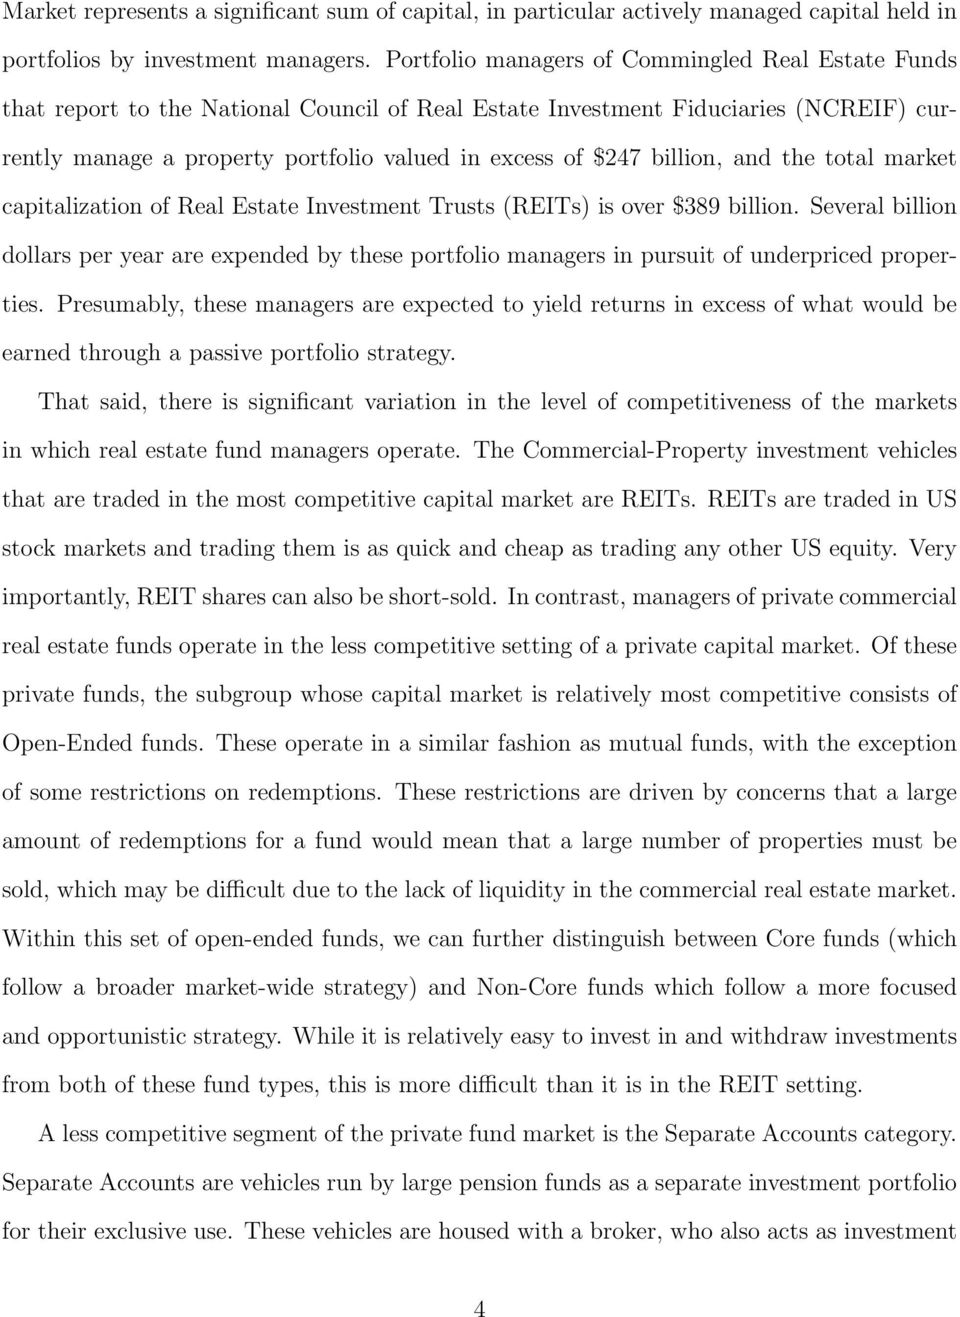 billion, and the total market capitalization of Real Estate Investment Trusts (REITs) is over $389 billion.